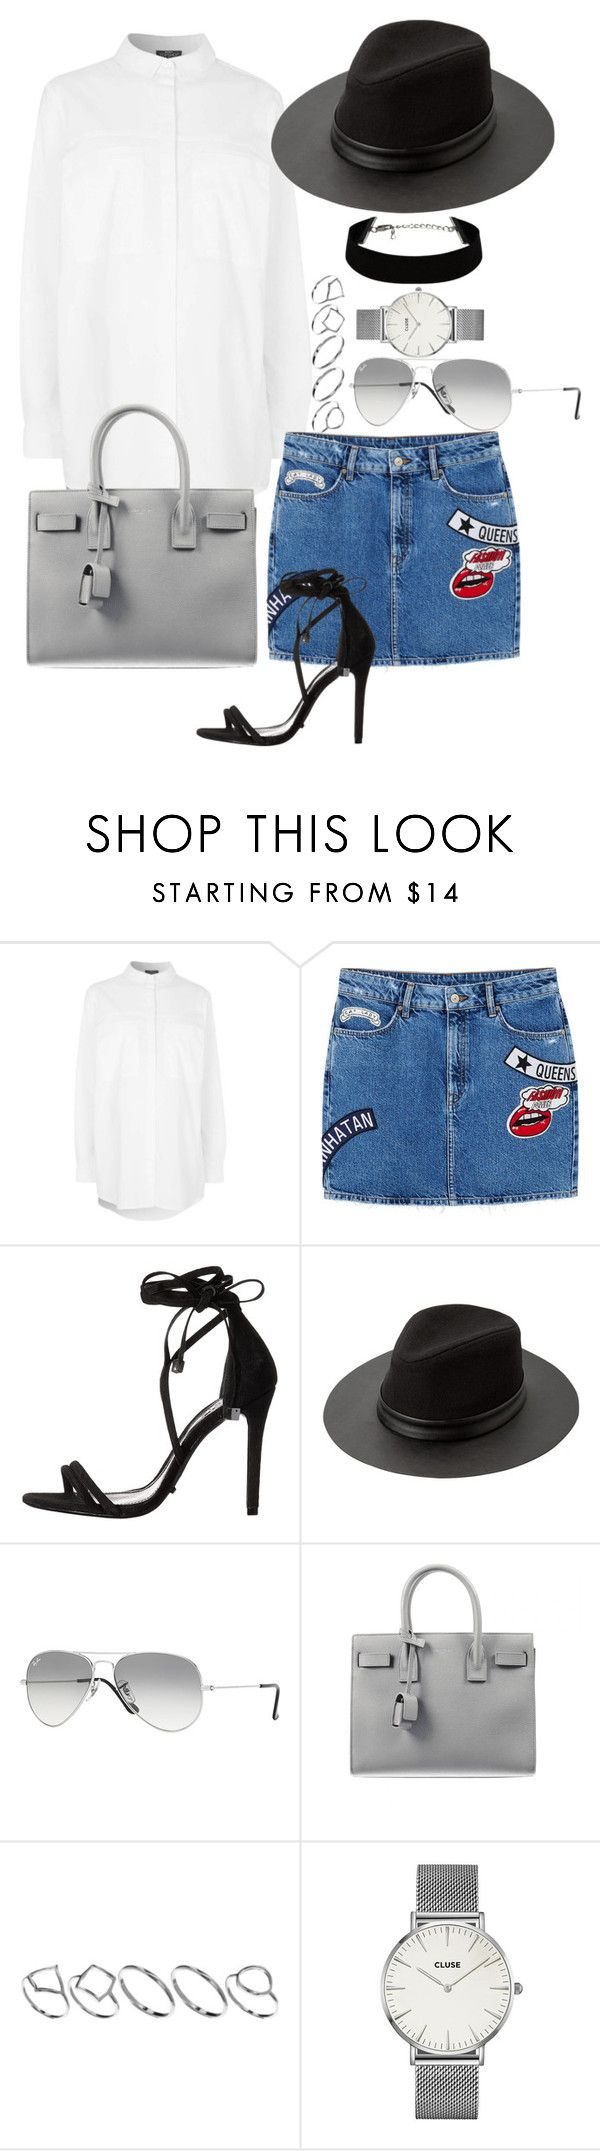 """""""#708"""" by blendingtwostyles ❤ liked on Polyvore featuring Topshop, MANGO, Schutz, Ray-Ban, Yves Saint Laurent, ASOS and CLUSE"""